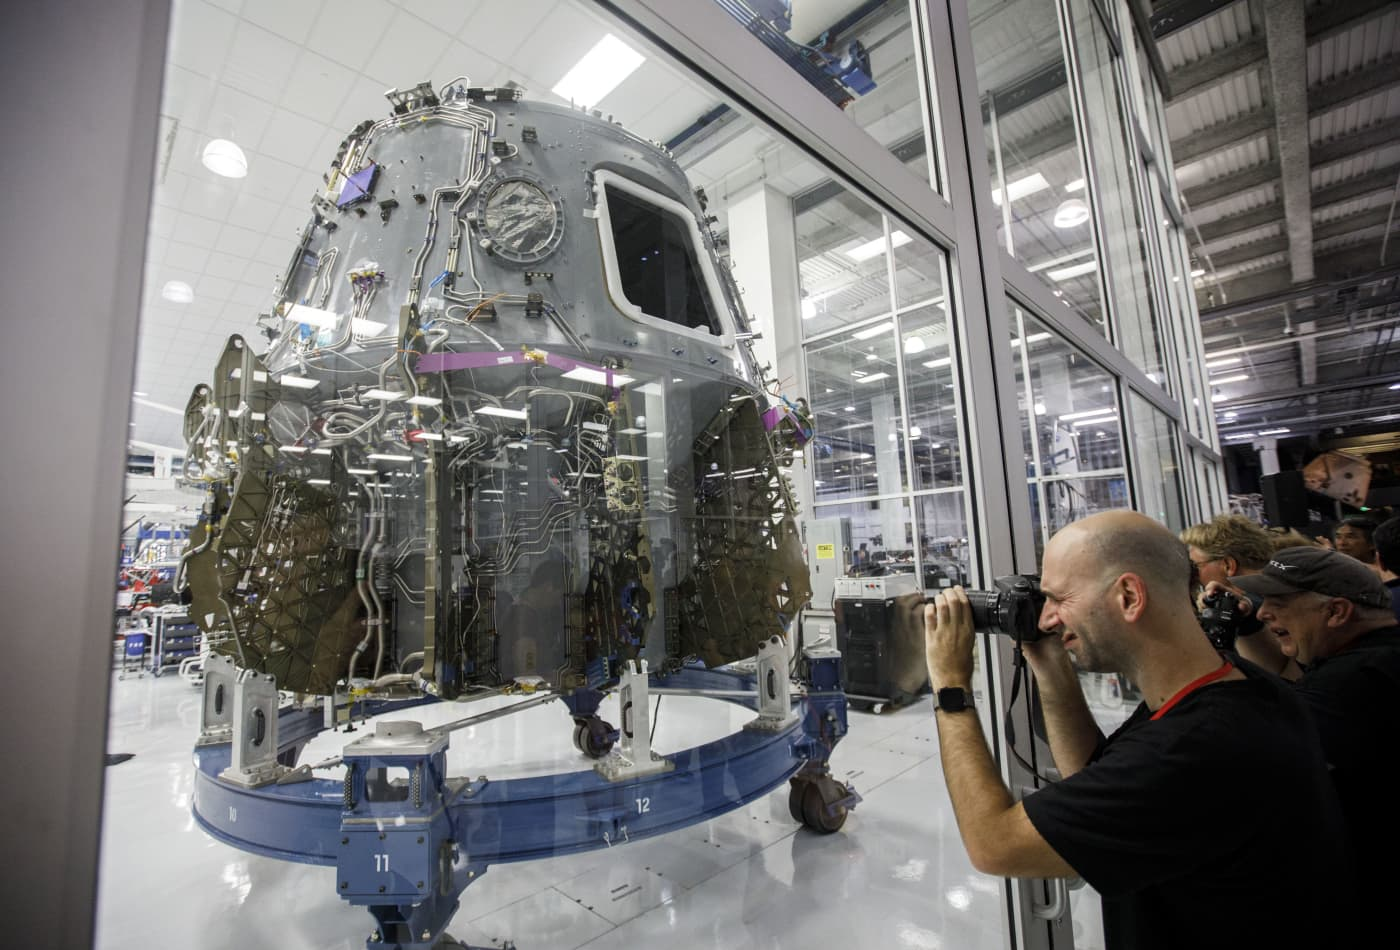 SpaceX coronavirus cases rise to six employees as Musk's company continues 'mission essential' work